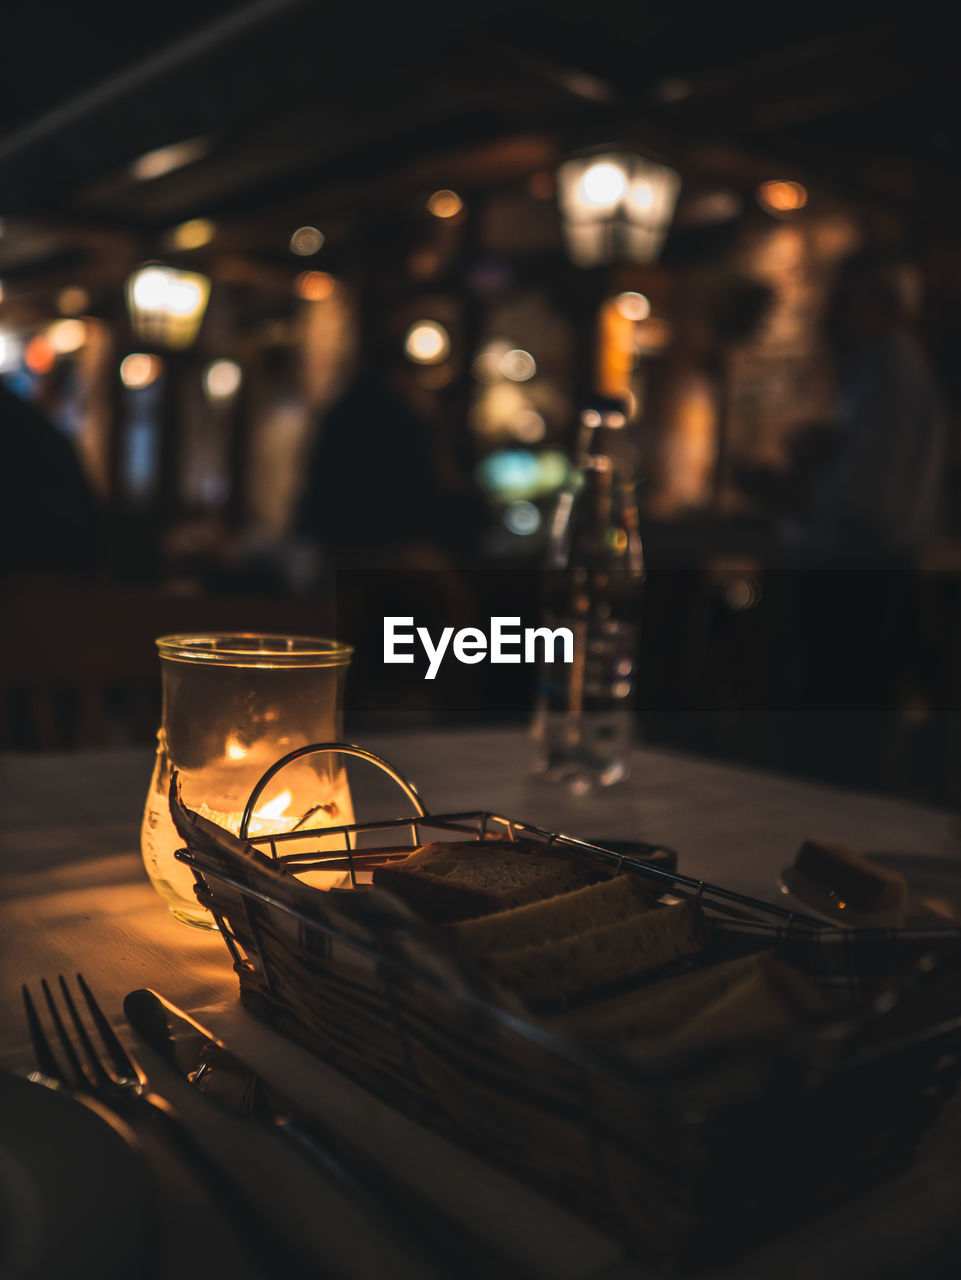 food and drink, drink, refreshment, illuminated, indoors, table, still life, restaurant, glass, business, no people, household equipment, lighting equipment, selective focus, drinking glass, focus on foreground, glass - material, night, freshness, kitchen utensil, setting, light, crockery